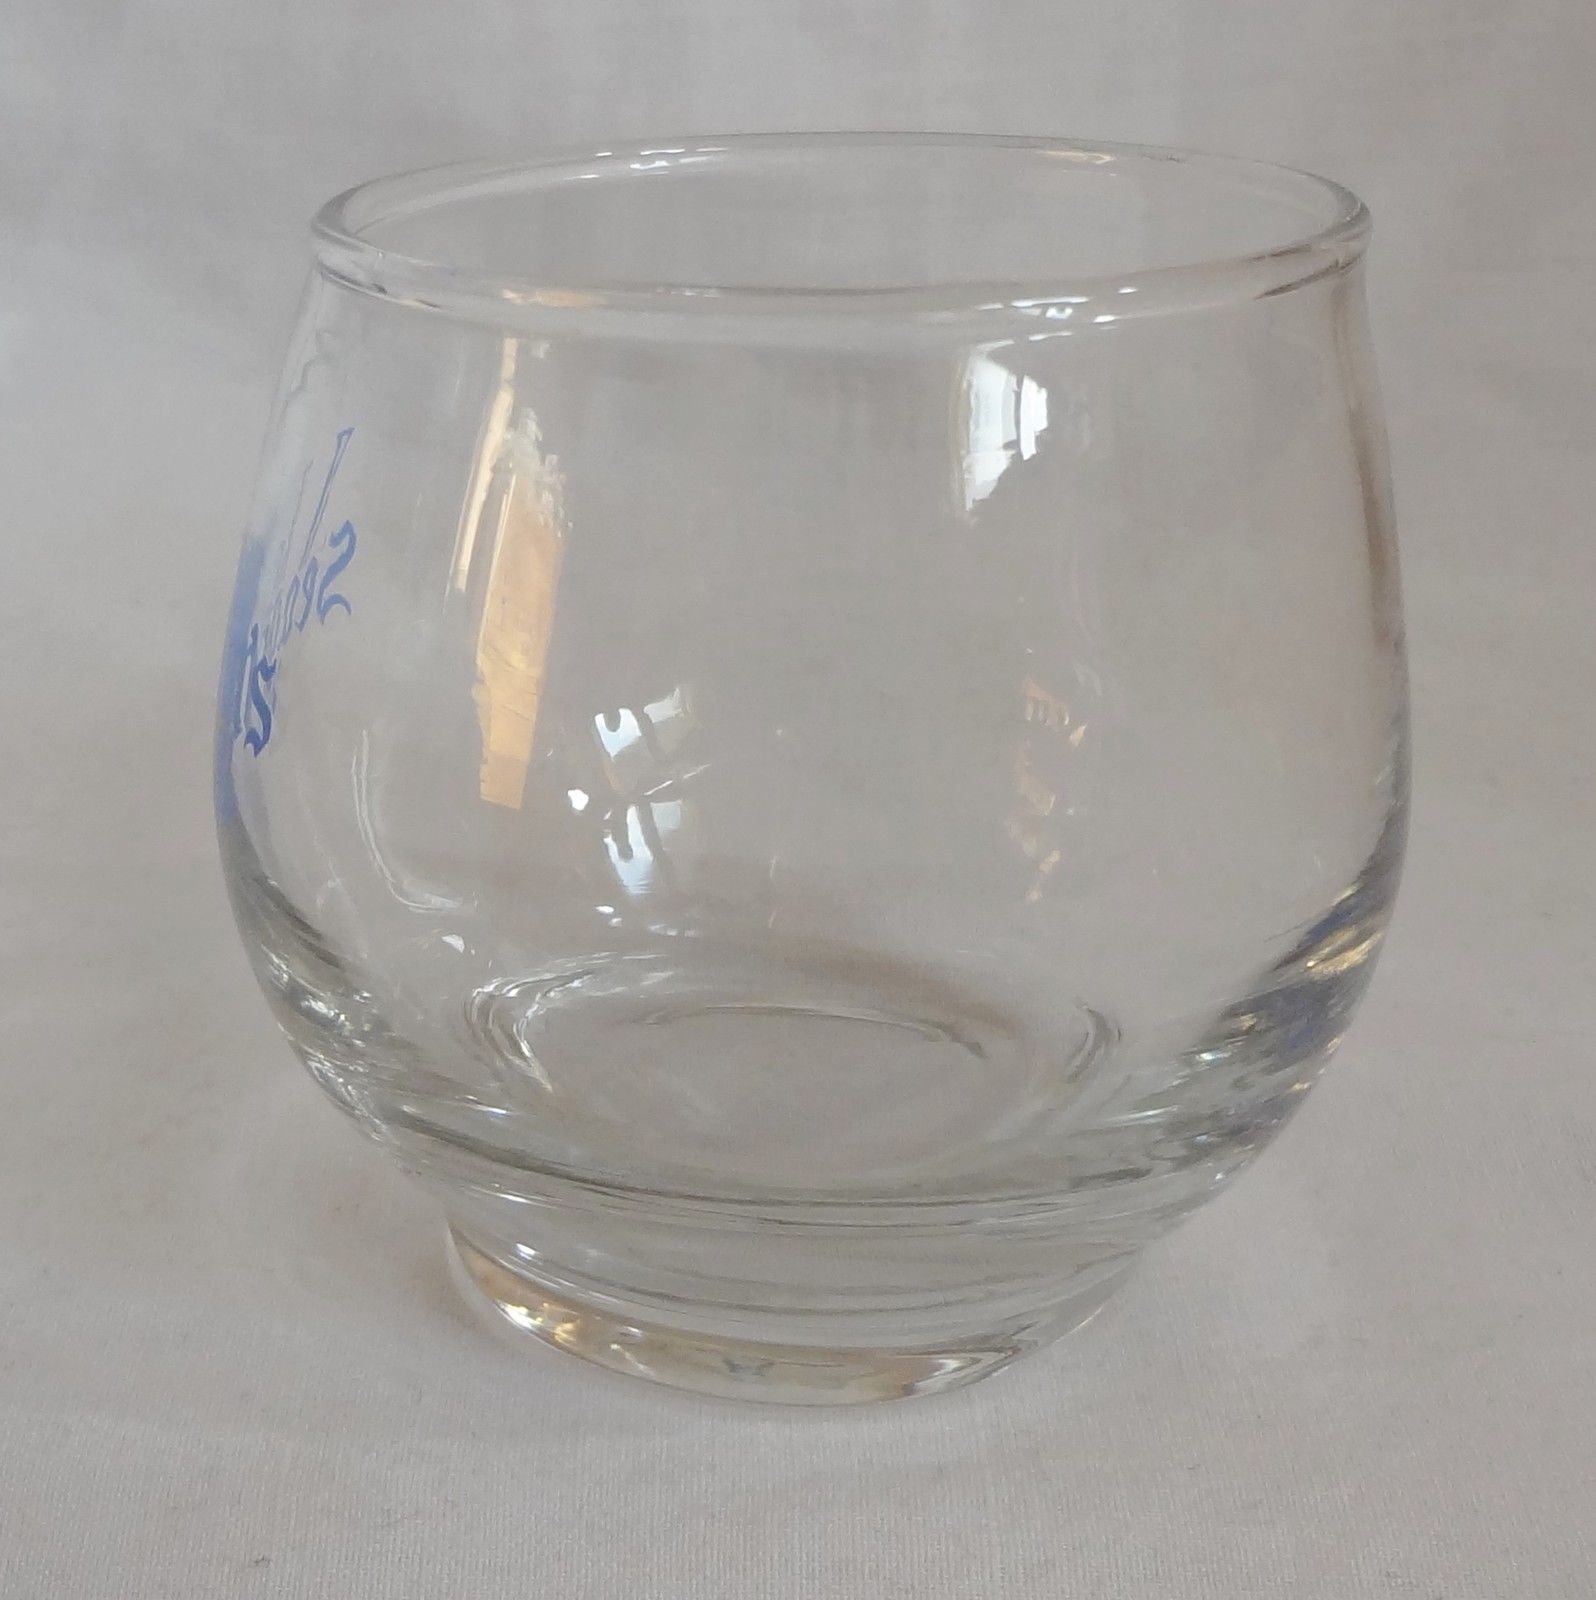 Seagram's VO Whiskey Whisky 6 oz Glass Barware